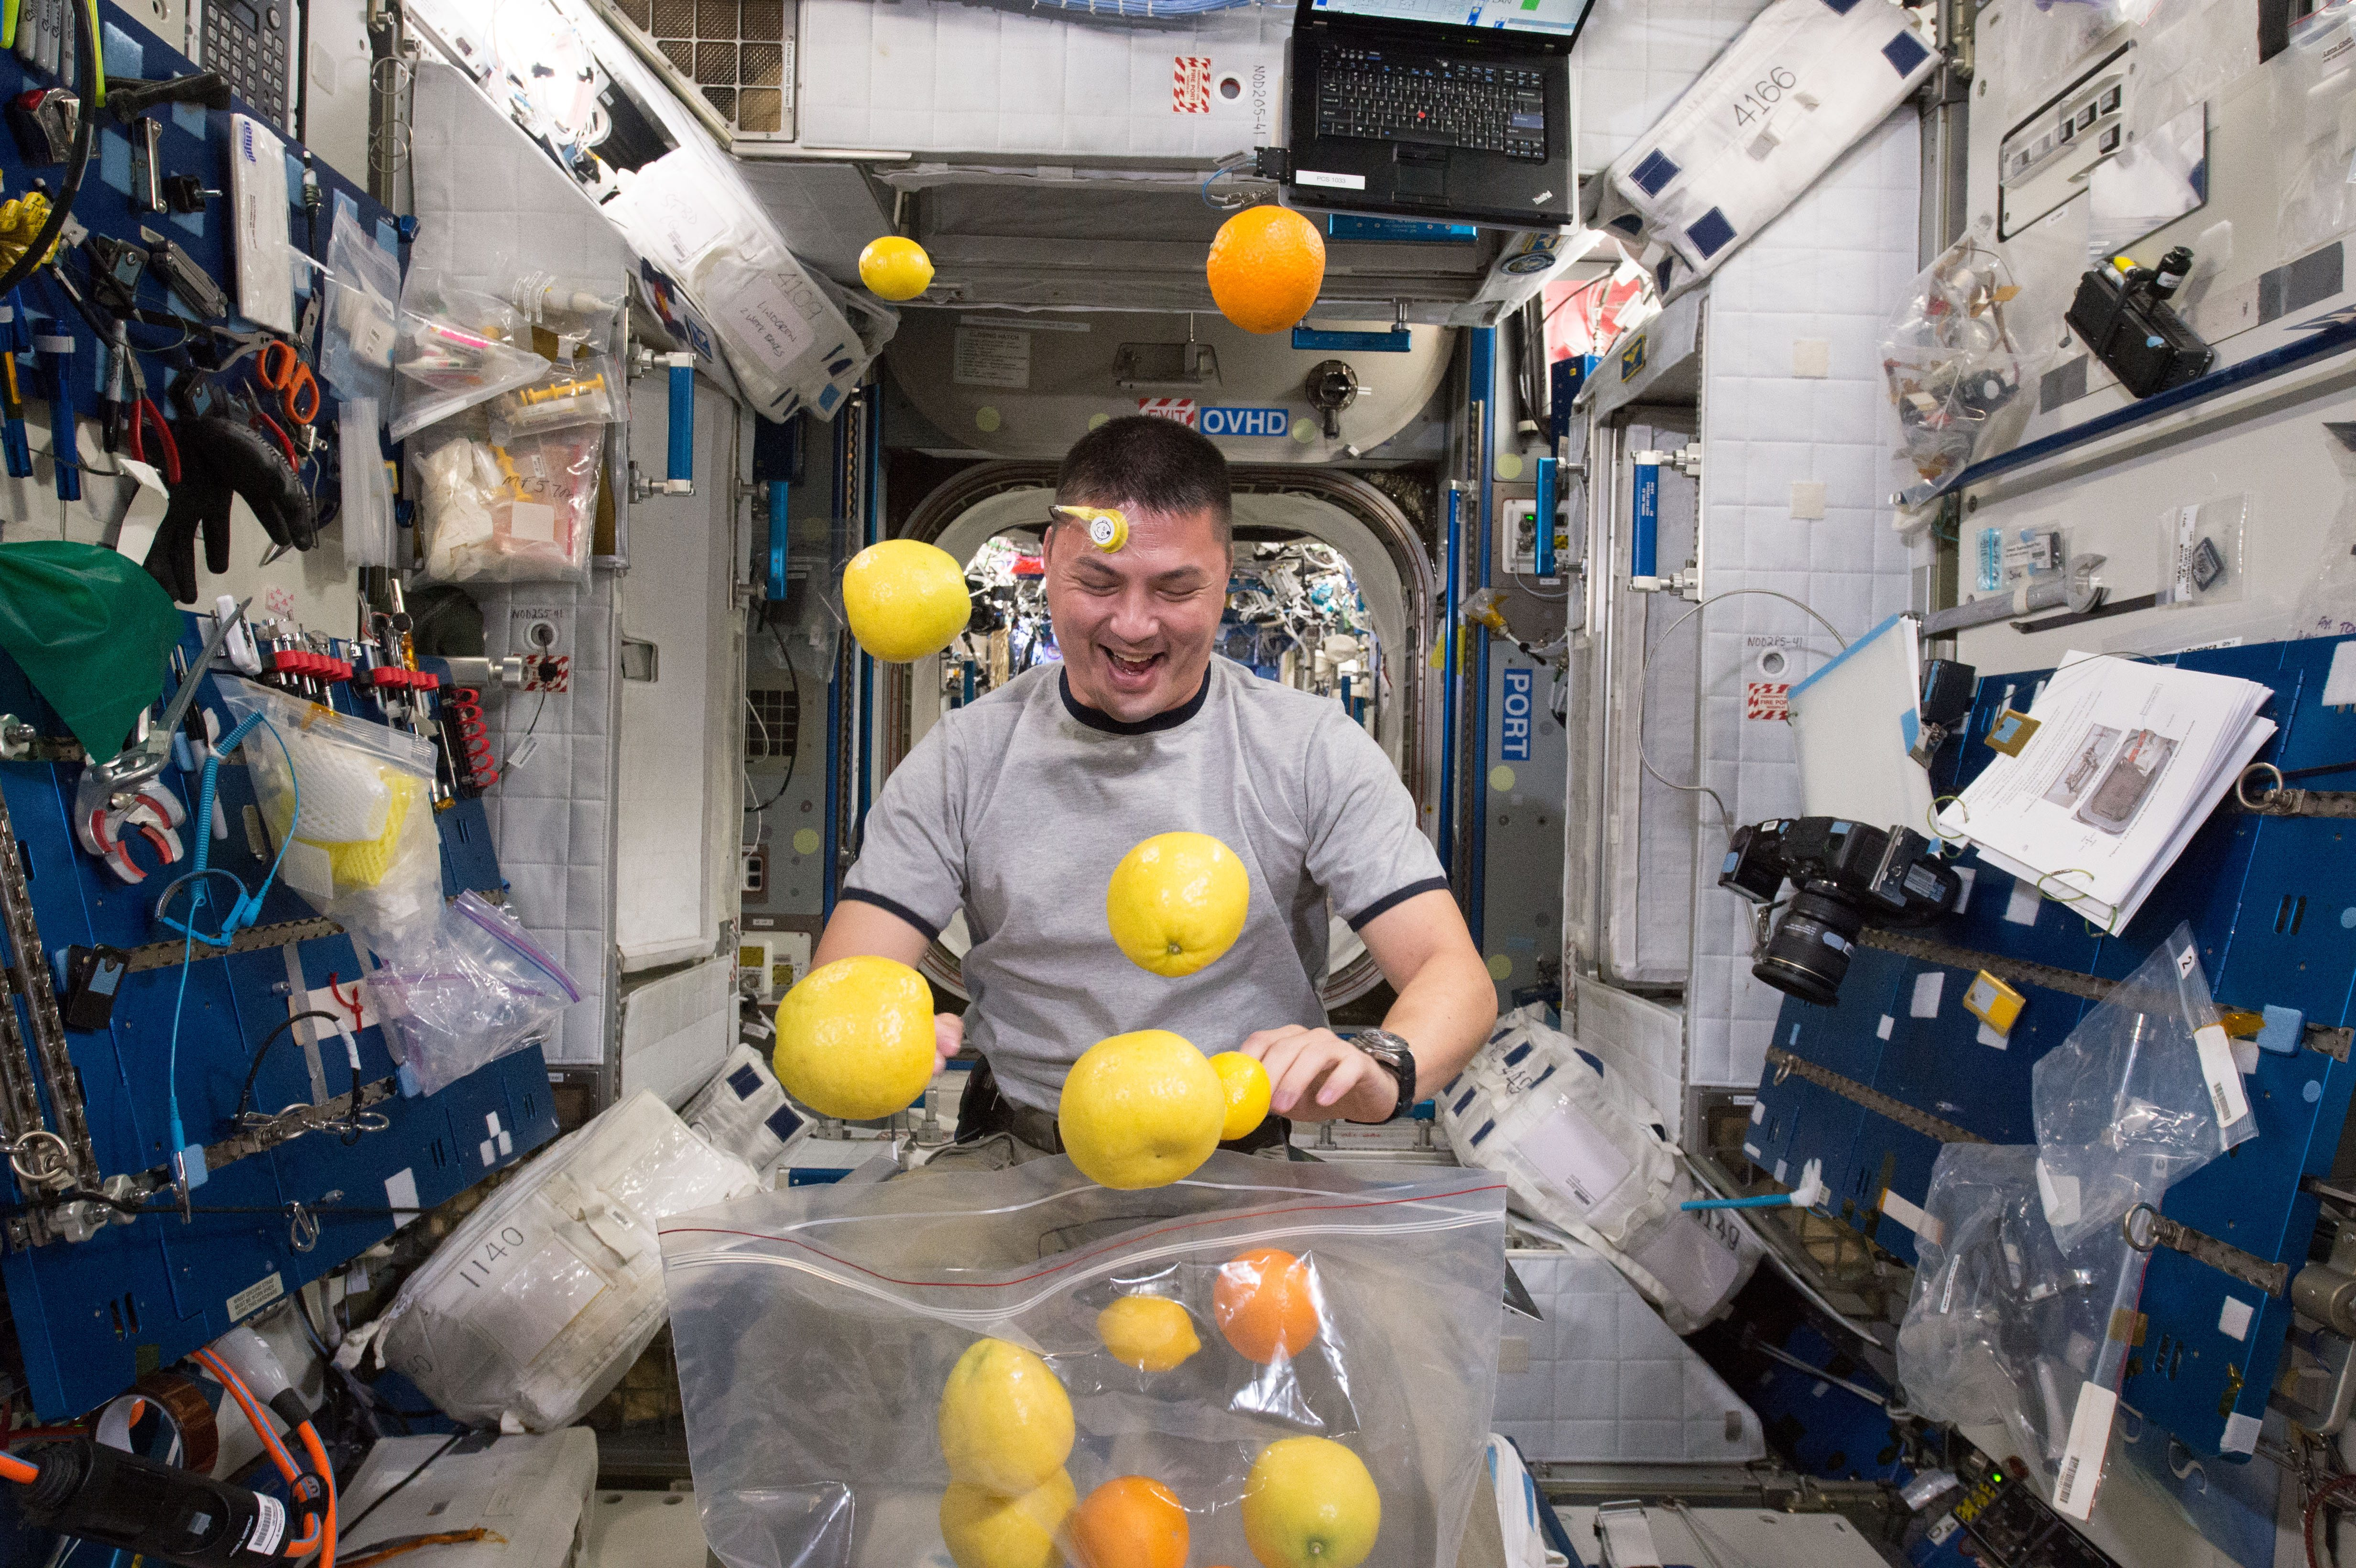 Astronaut's Perspective: Astronaut opening a bag of citrus in space